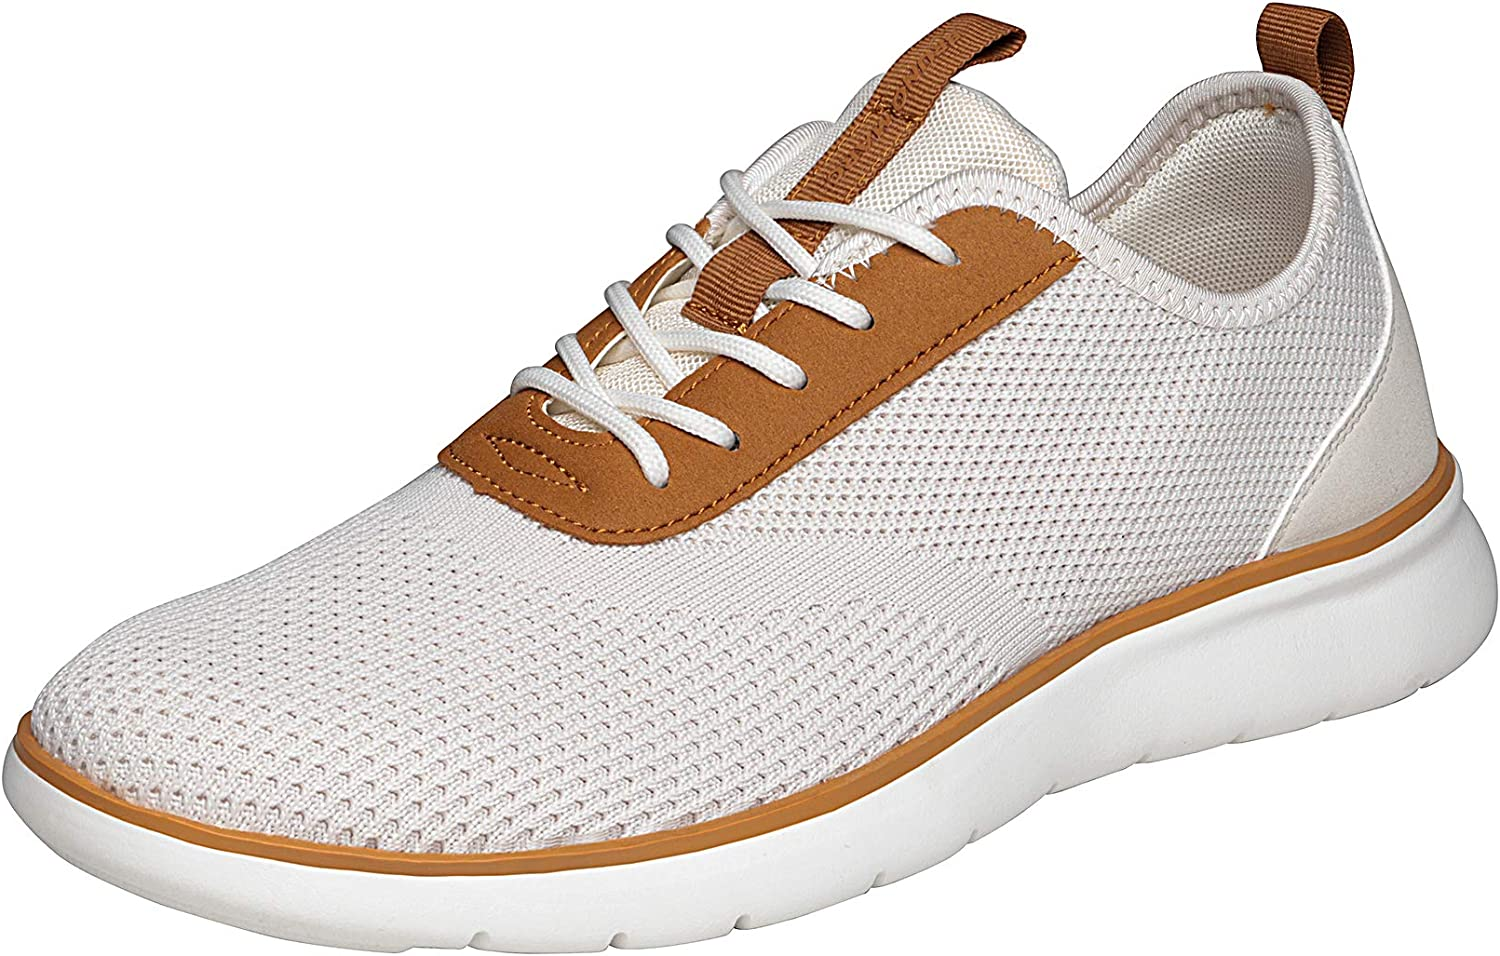 Bruno Marc Men's Discount mail order Walking Shoes Lightweight Max 71% OFF Casual Sn Tennis